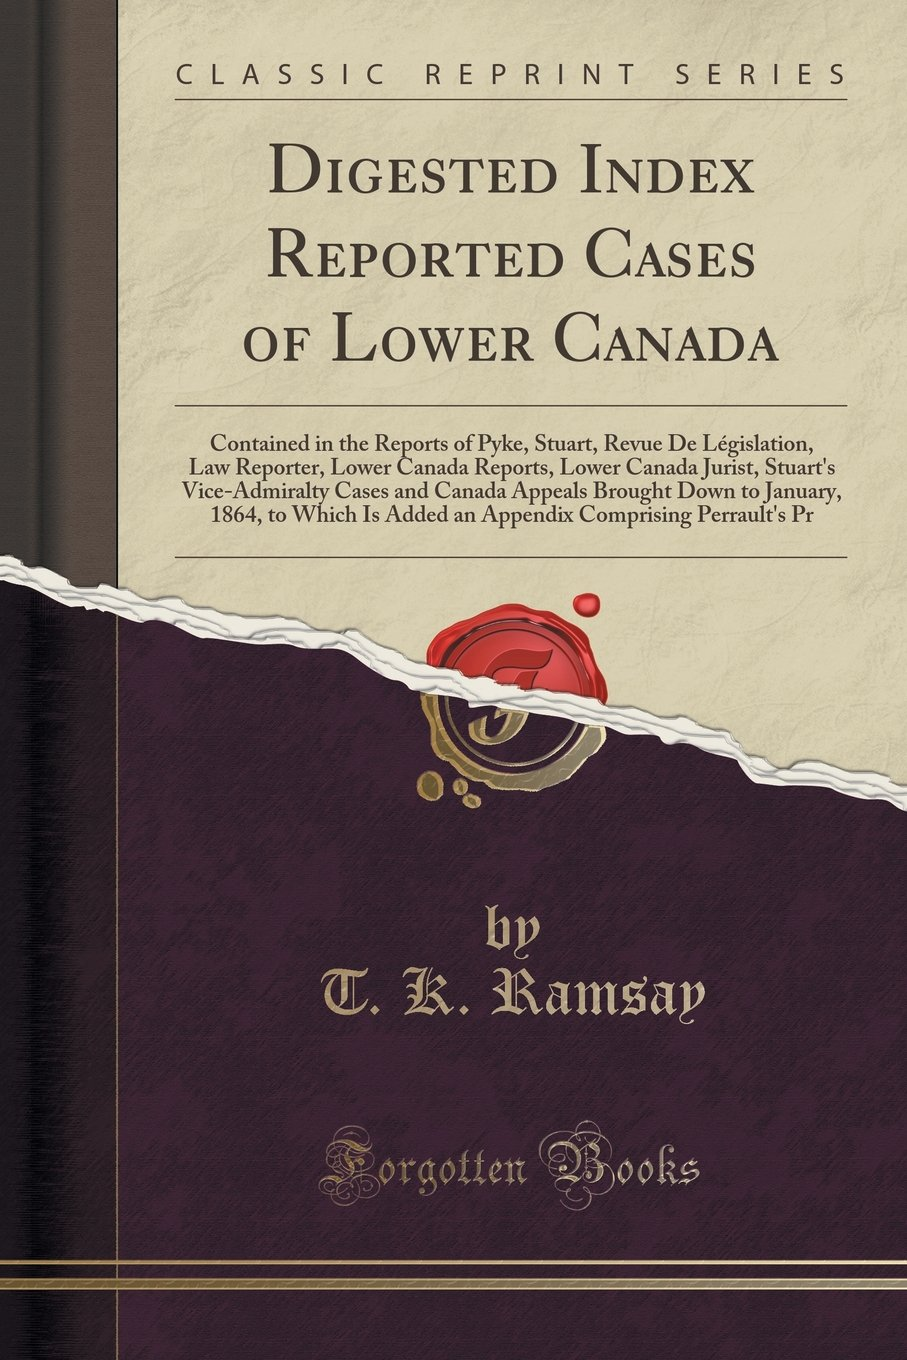 Digested Index Reported Cases of Lower Canada: Contained in the Reports of Pyke, Stuart, Revue De Législation, Law Reporter, Lower Canada Reports, .